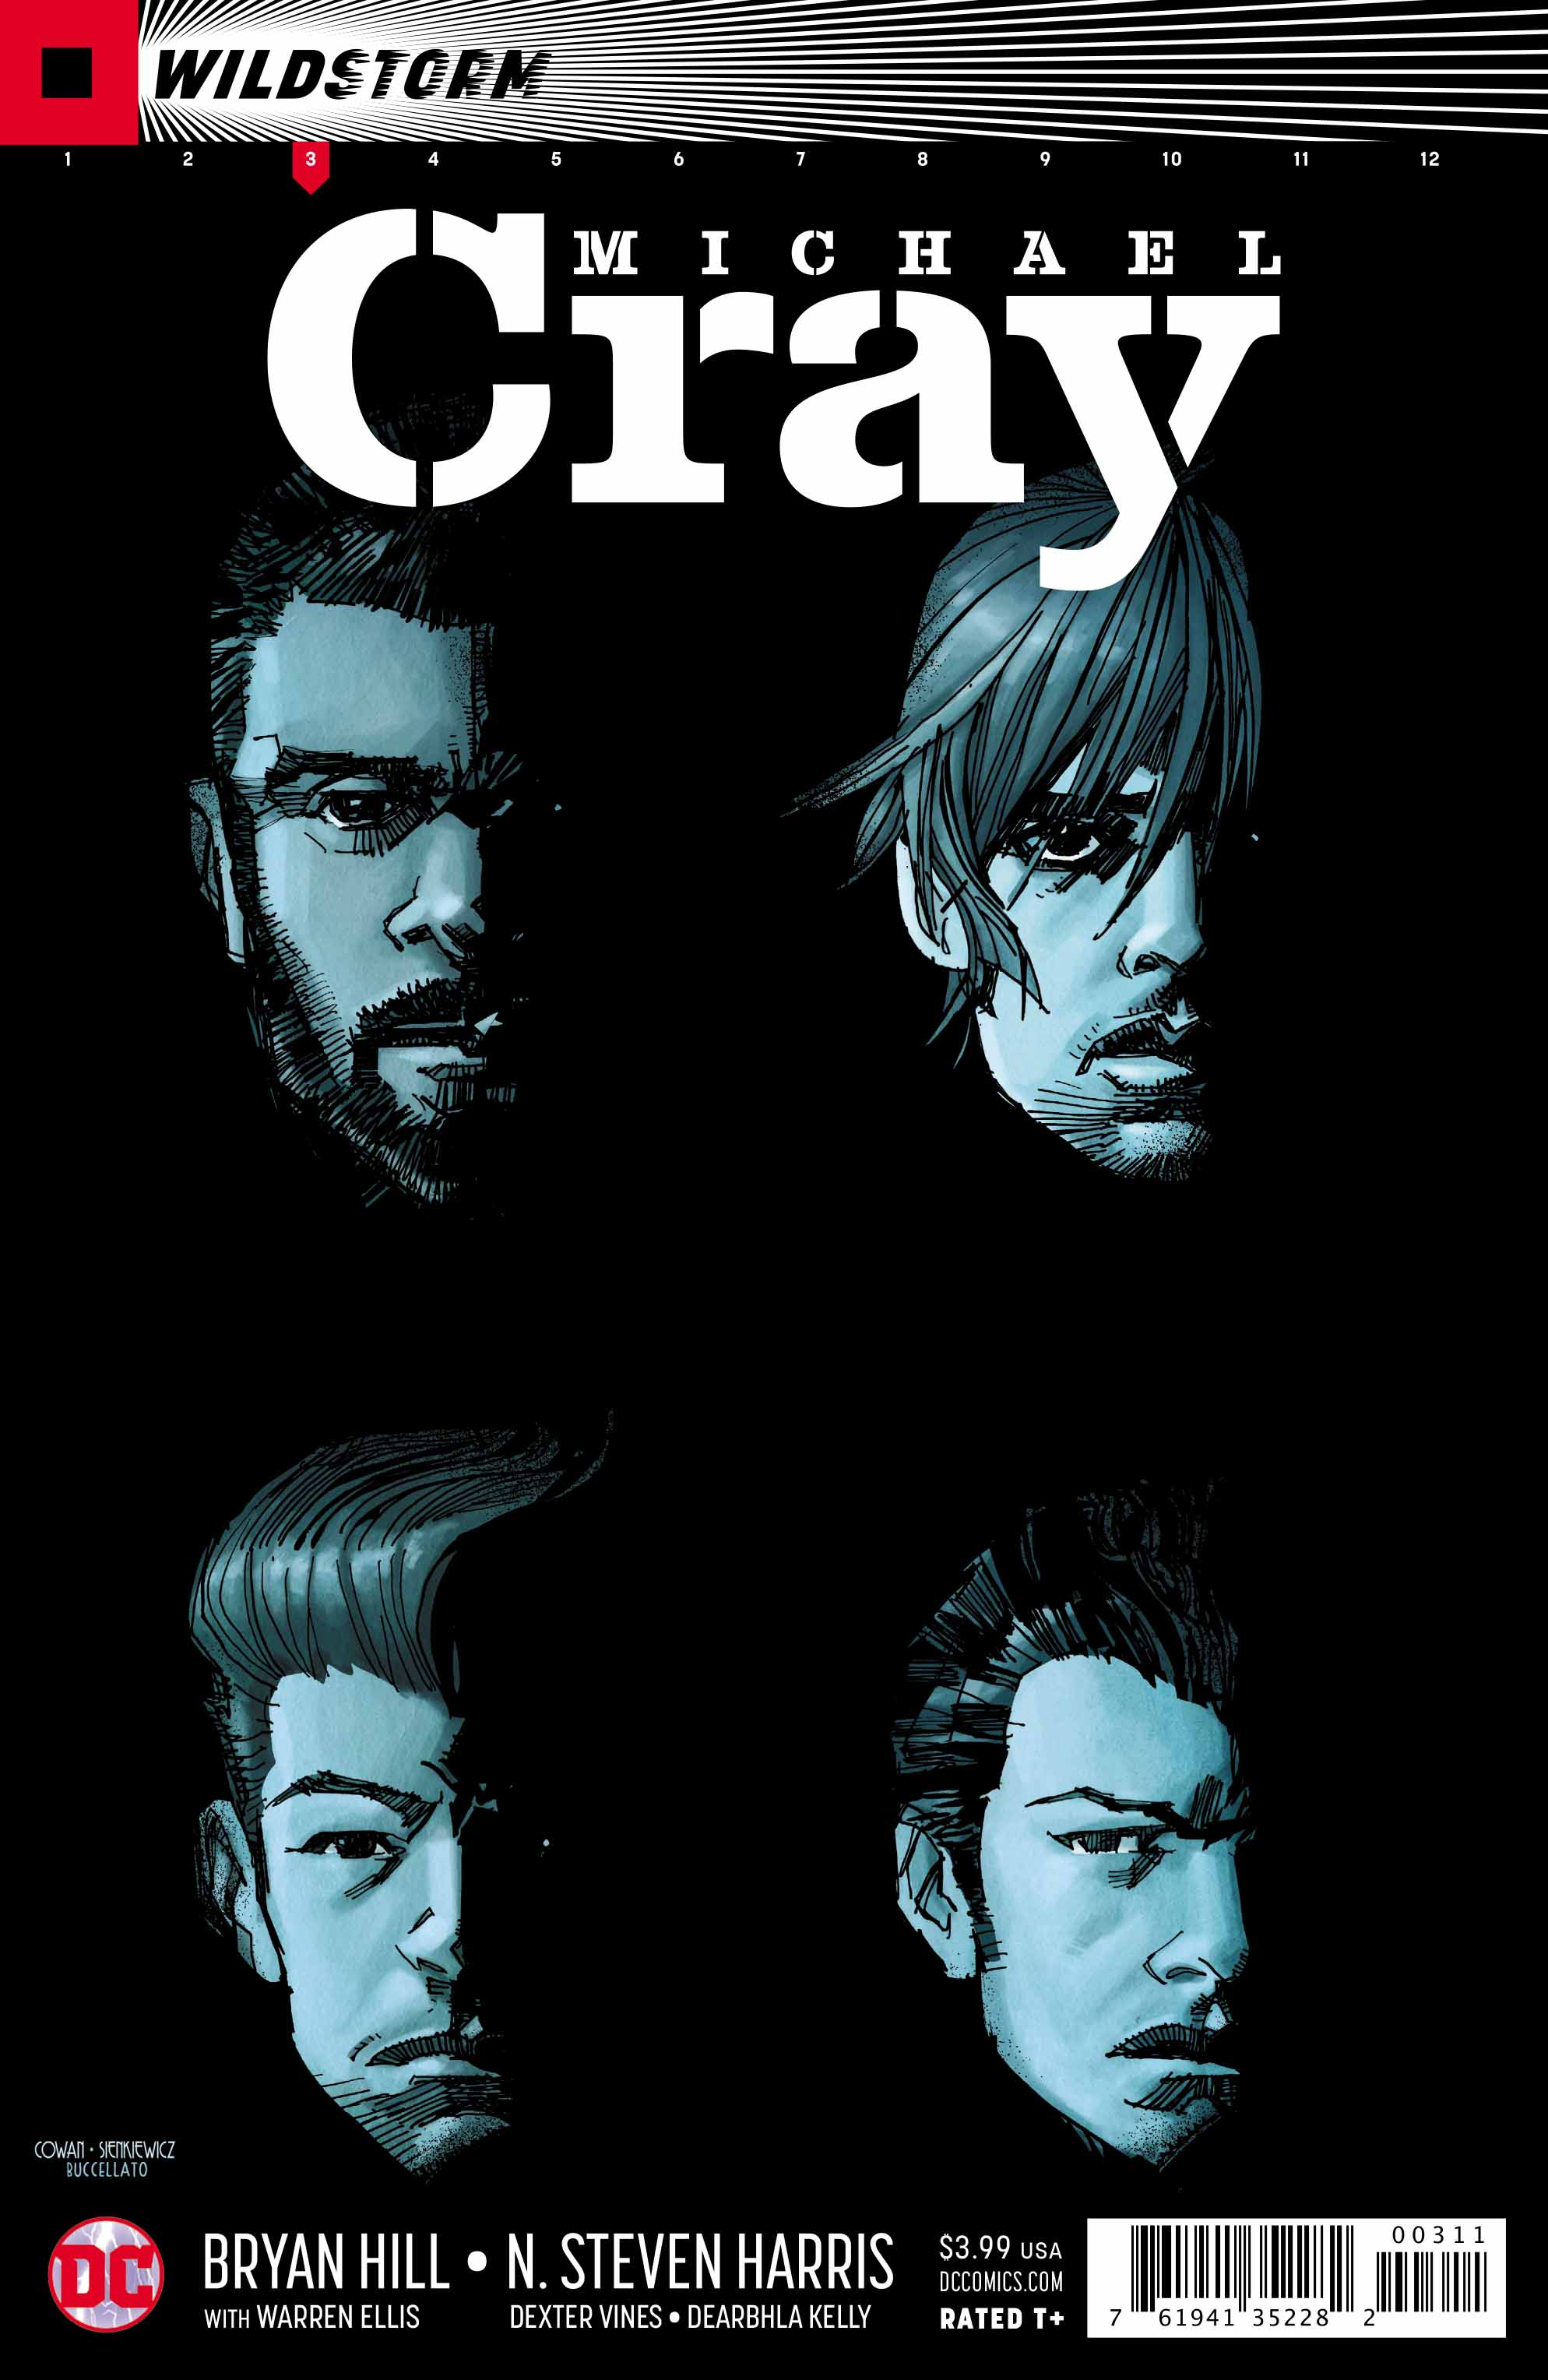 Wild Storm: Michael Cray #3 Review